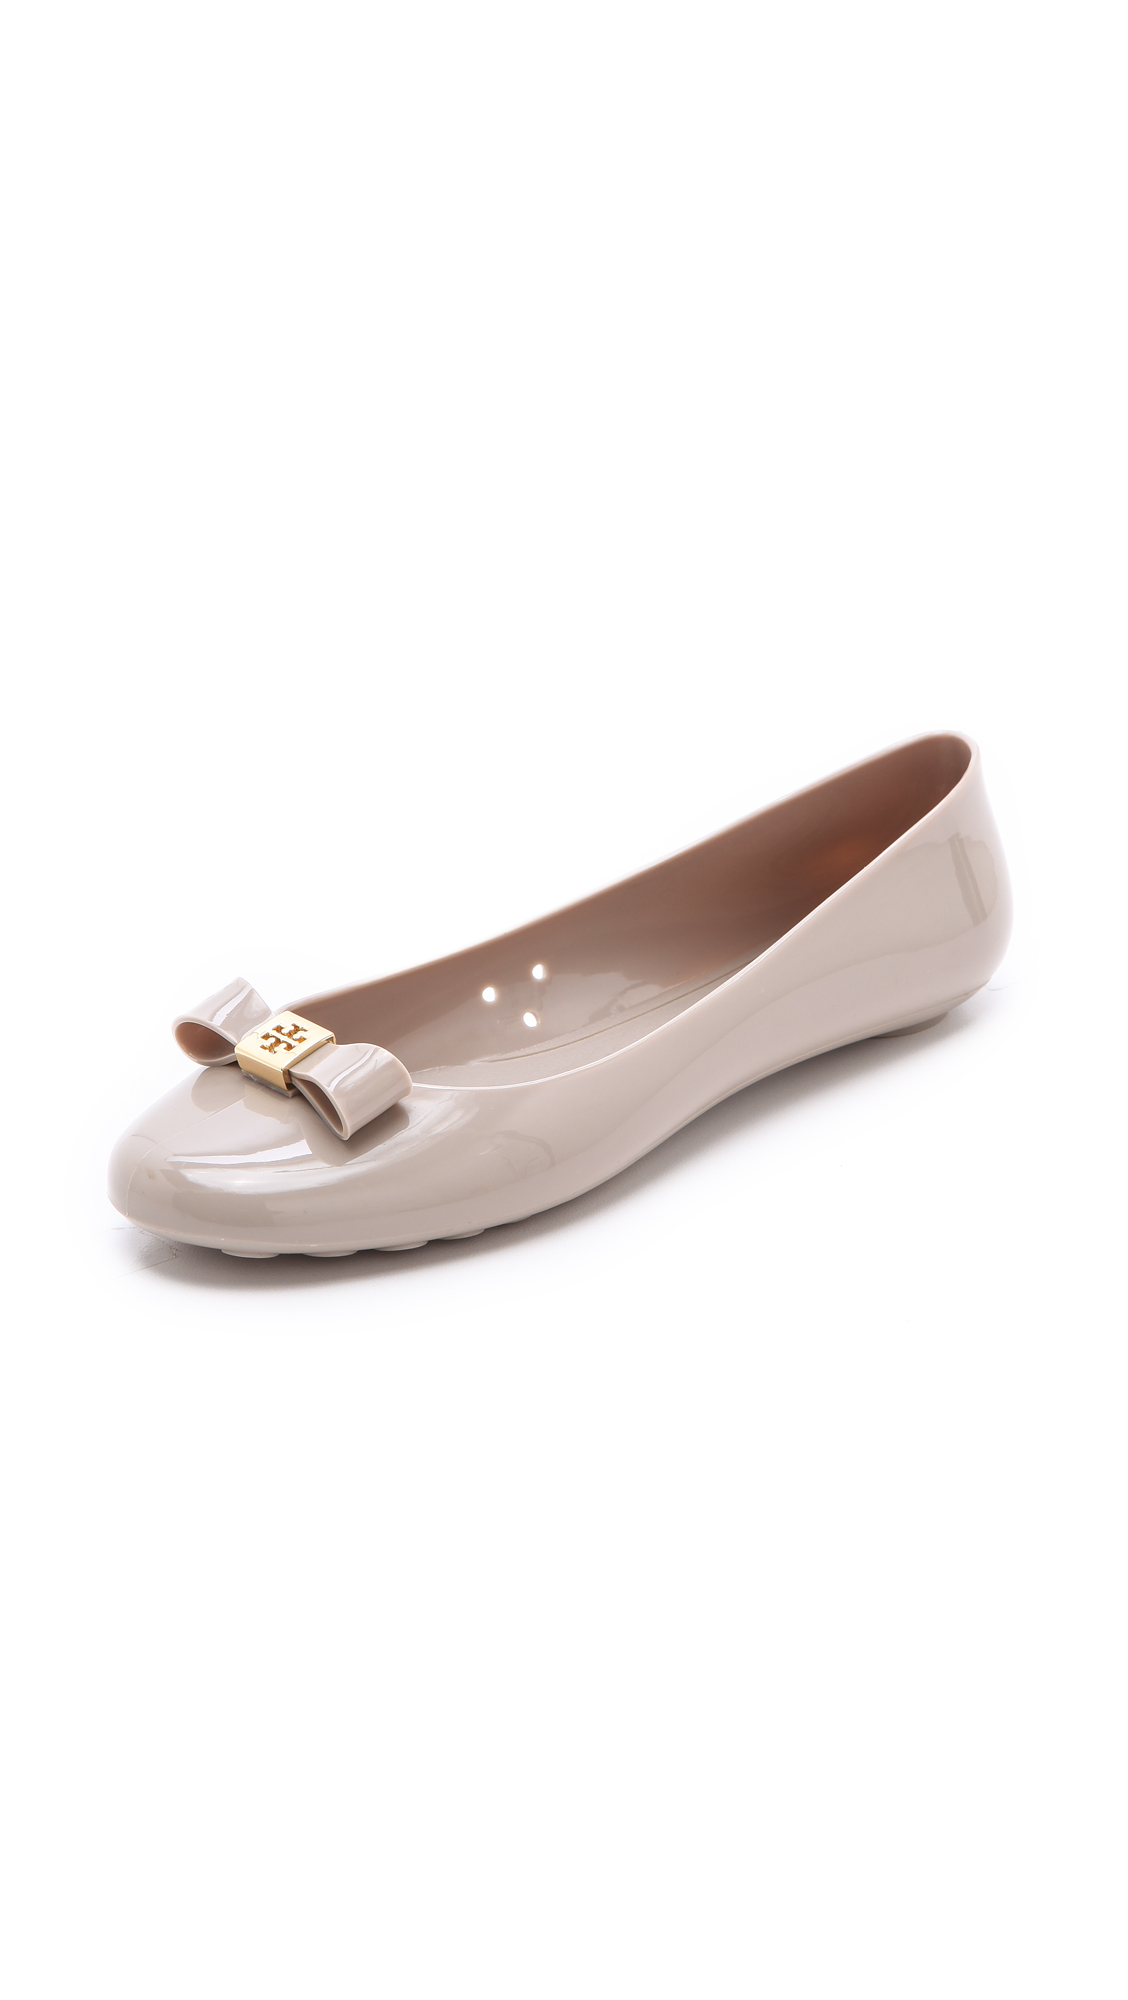 bd08722d2f5bc5 Tory Burch Jelly Bow Ballet Flats